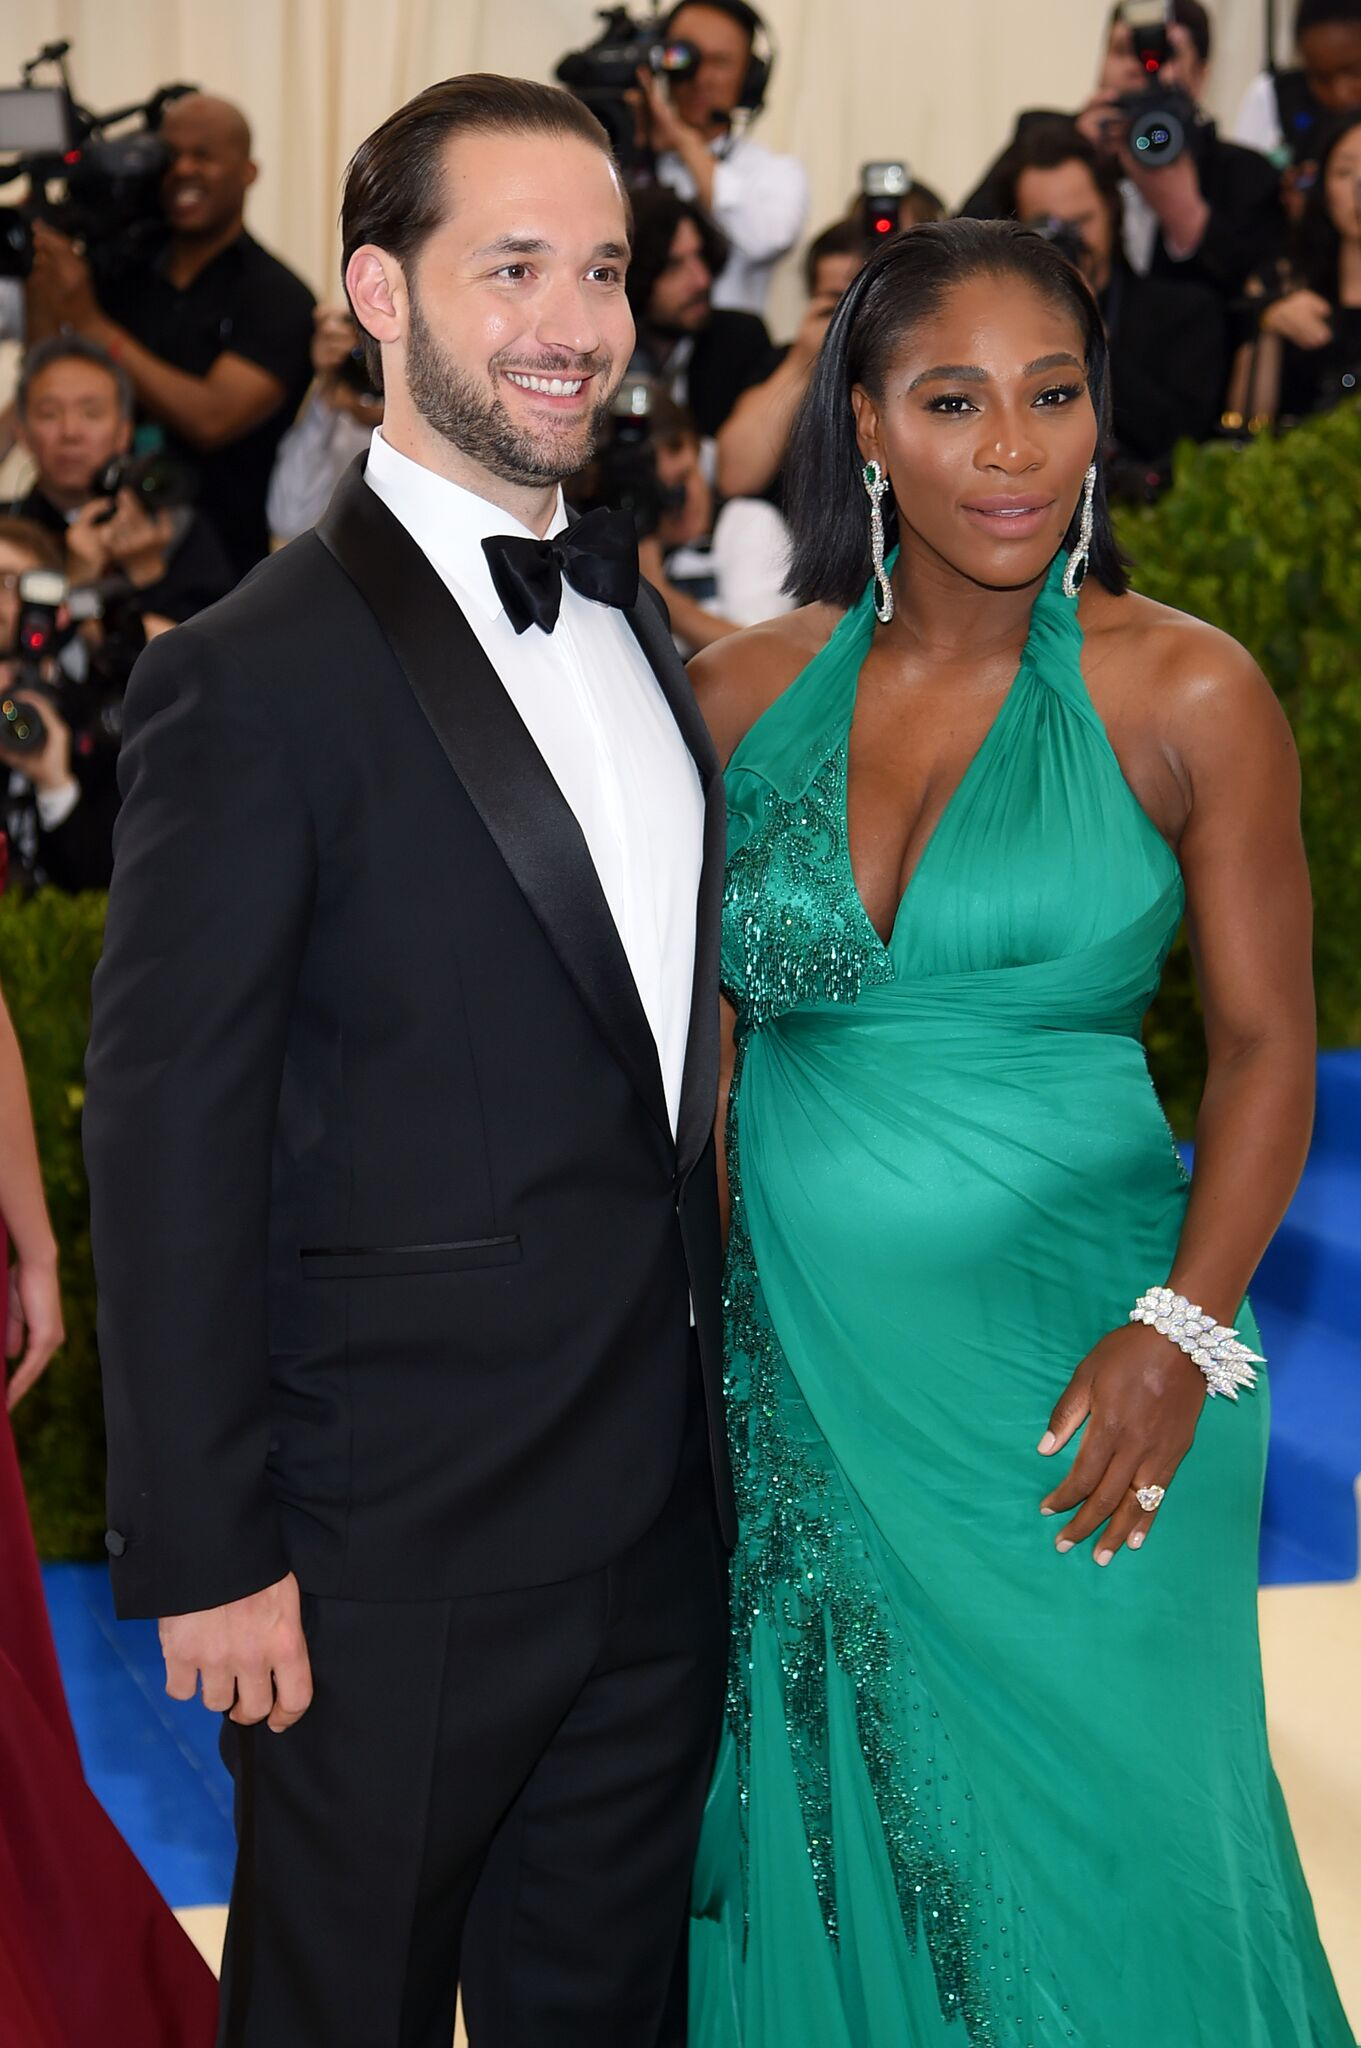 """Alexis Ohanian and Serena Williams at the """"Rei Kawakubo/Comme des Garcons: Art Of The In-Between"""" Costume Institute Gala at the Metropolitan Museum of Art on May 1, 2017.   Source: Getty Images"""